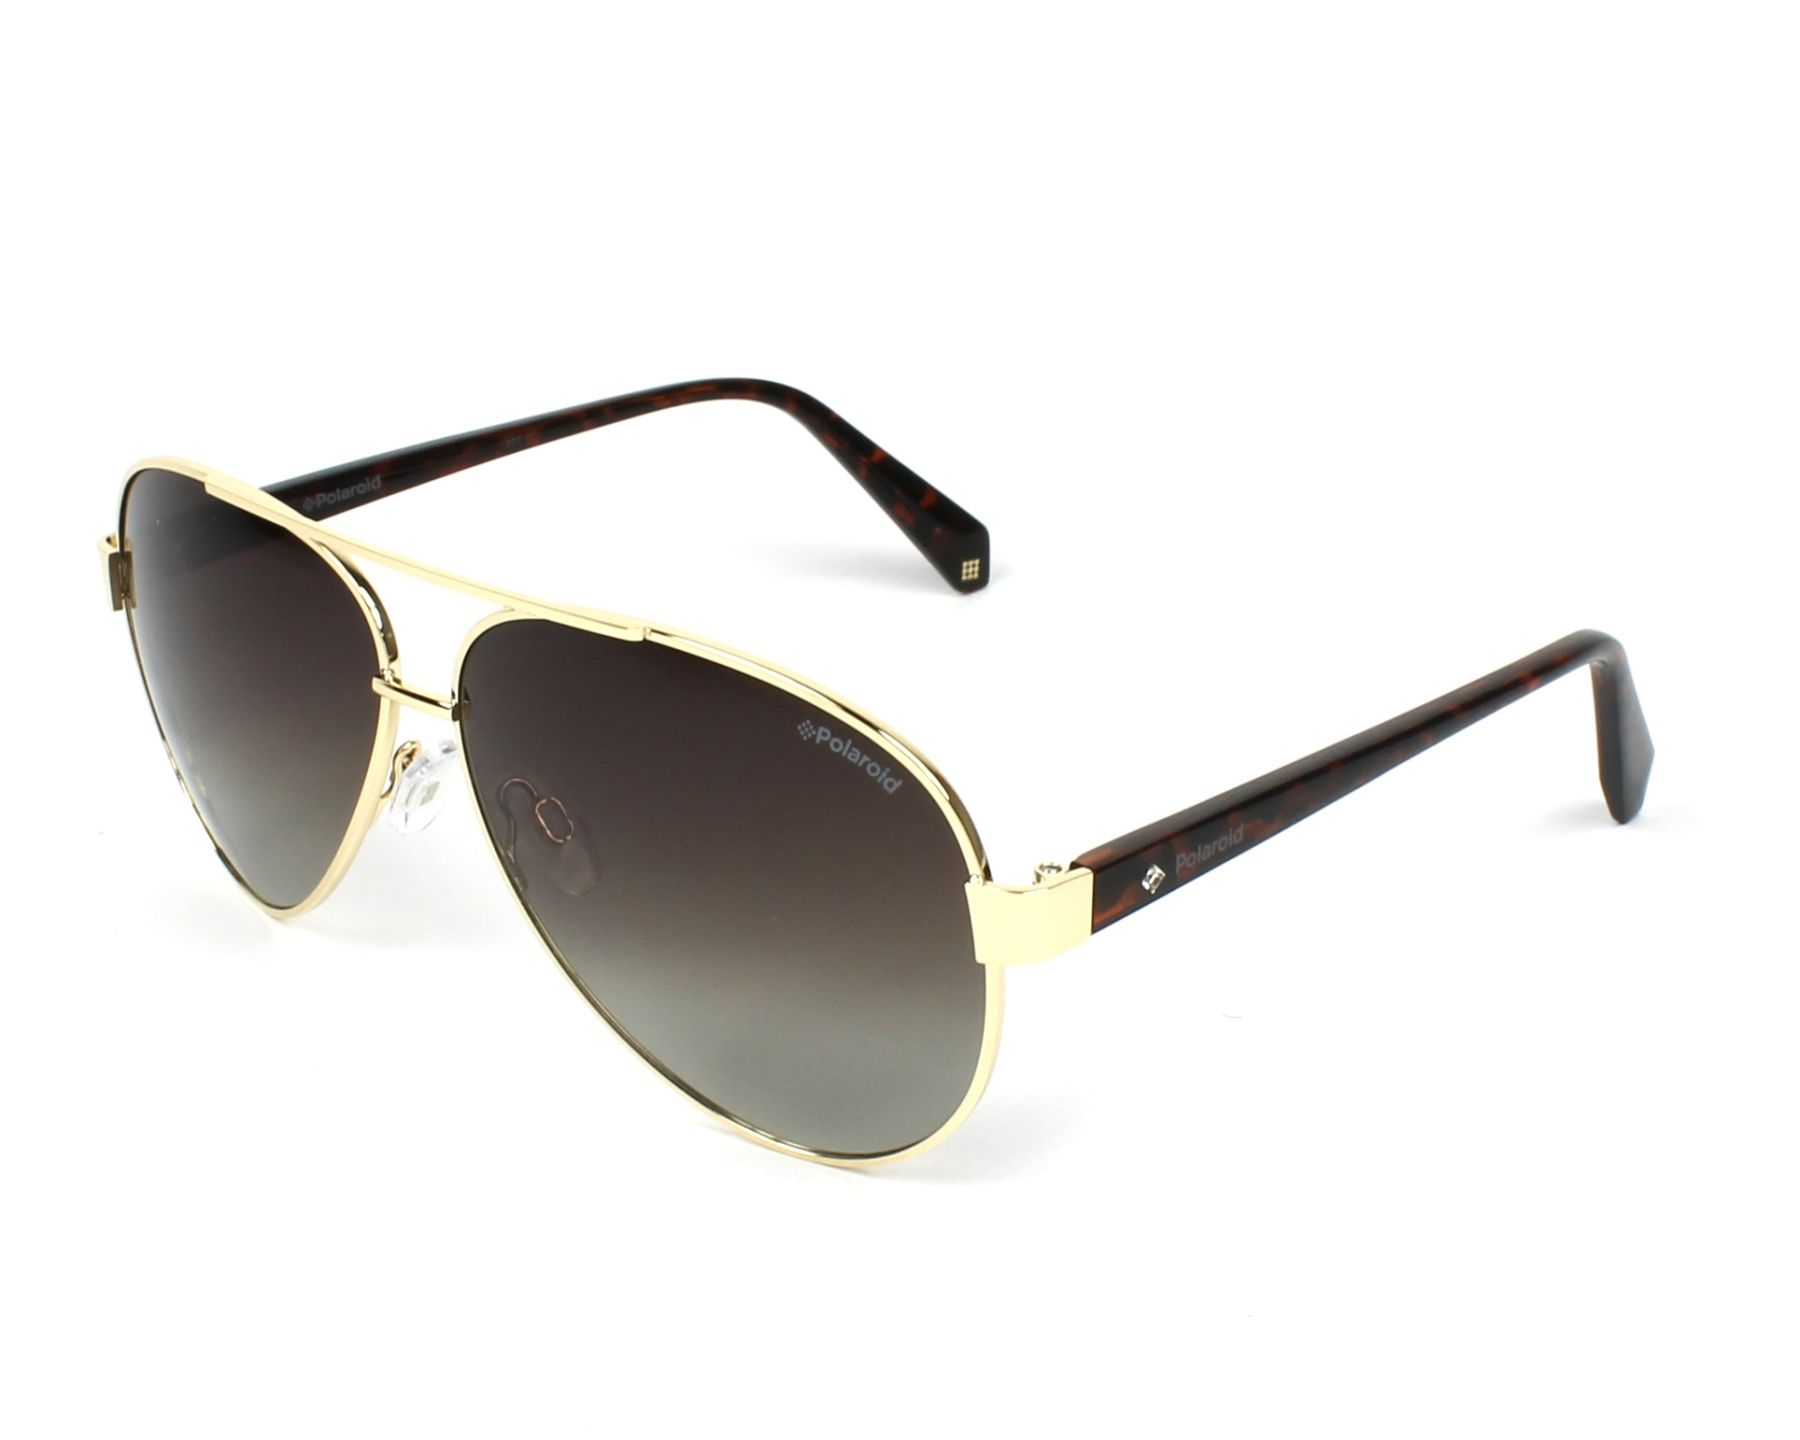 191e26cd644 Polarized. Sunglasses Polaroid PLD-4061-S J5G LA 61-11 Gold Havana profile